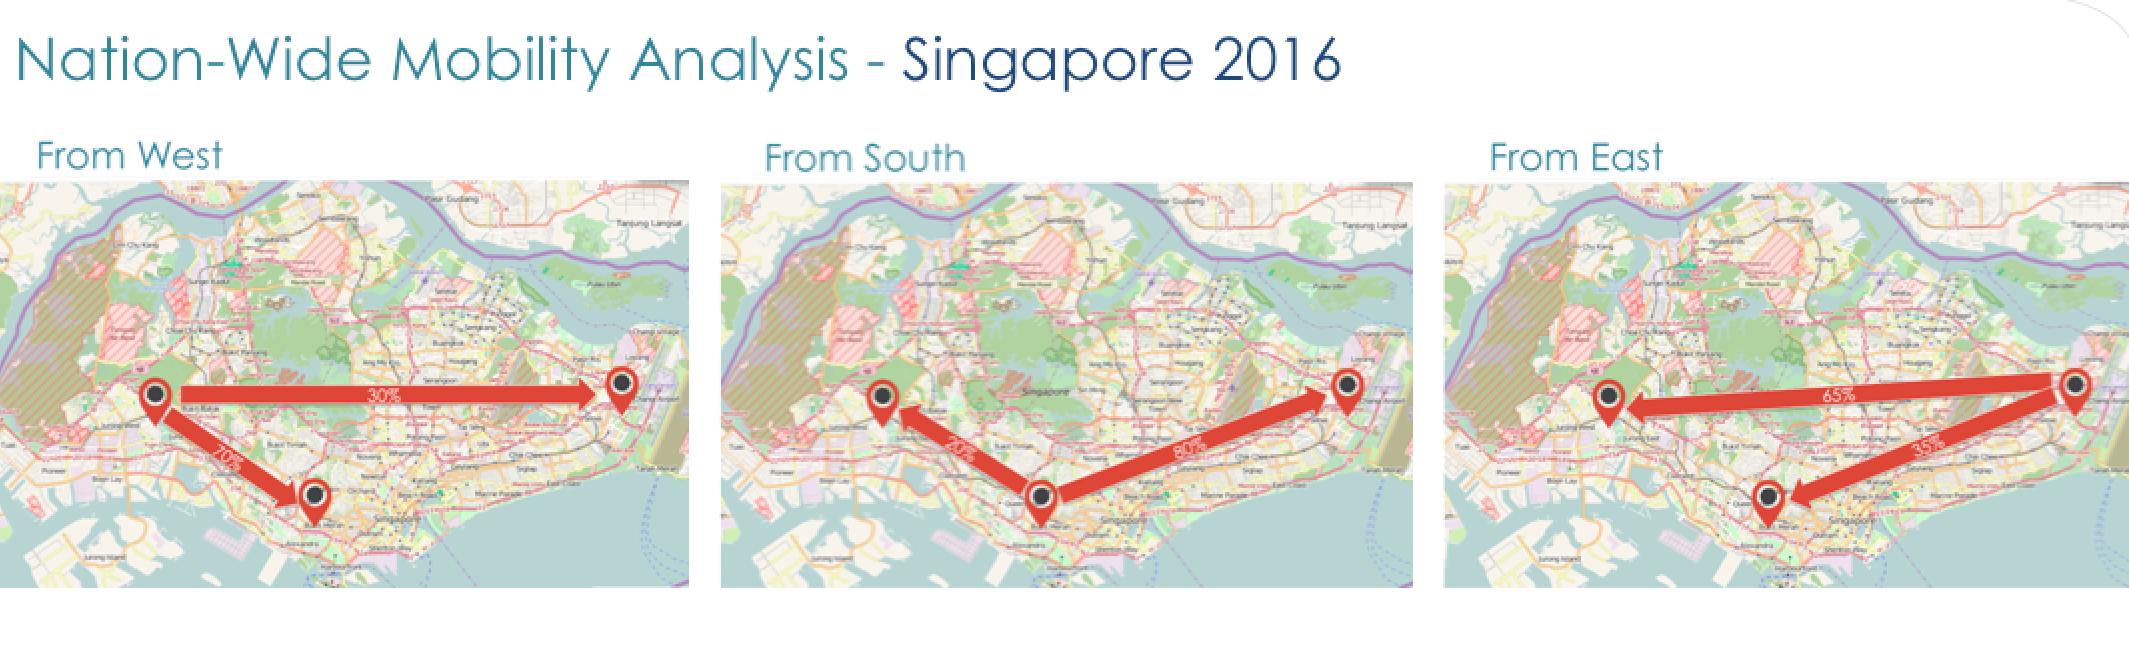 Singapore Nation-Wide Mobility Analysis